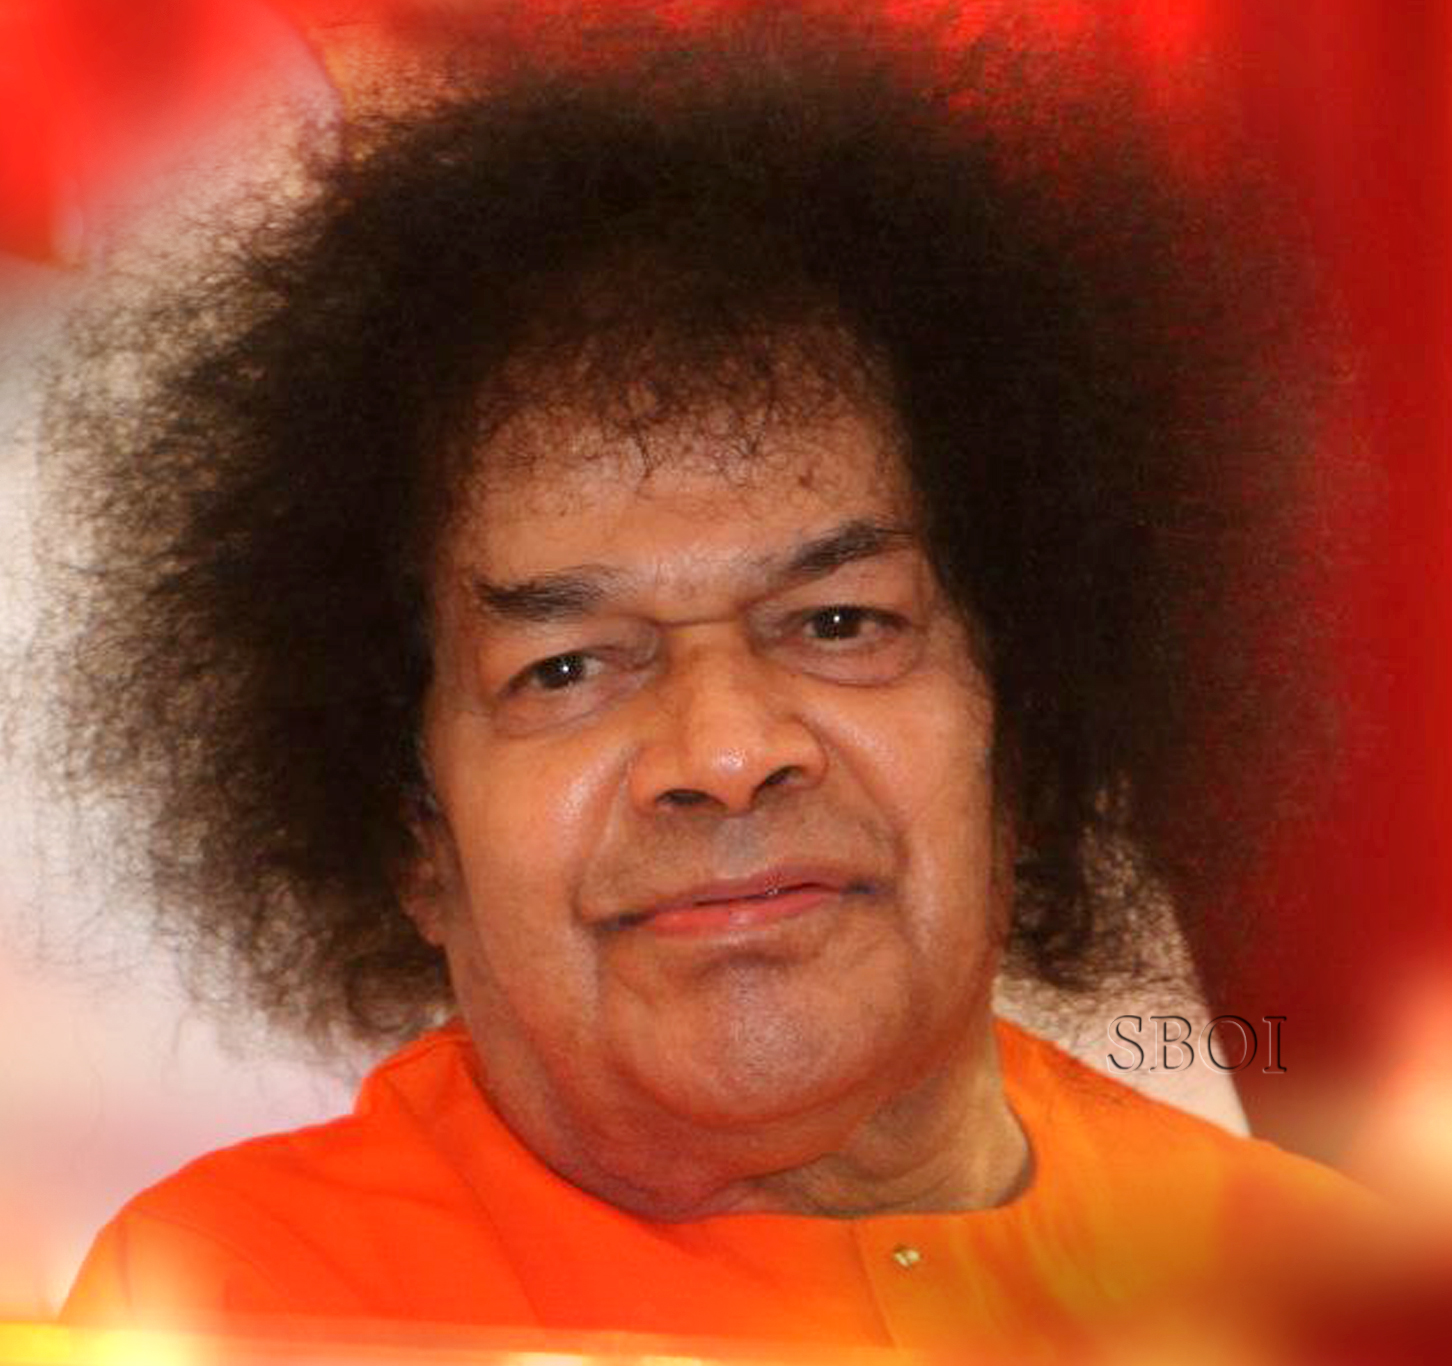 Sri sathya sai baba special days in august 2014 view original